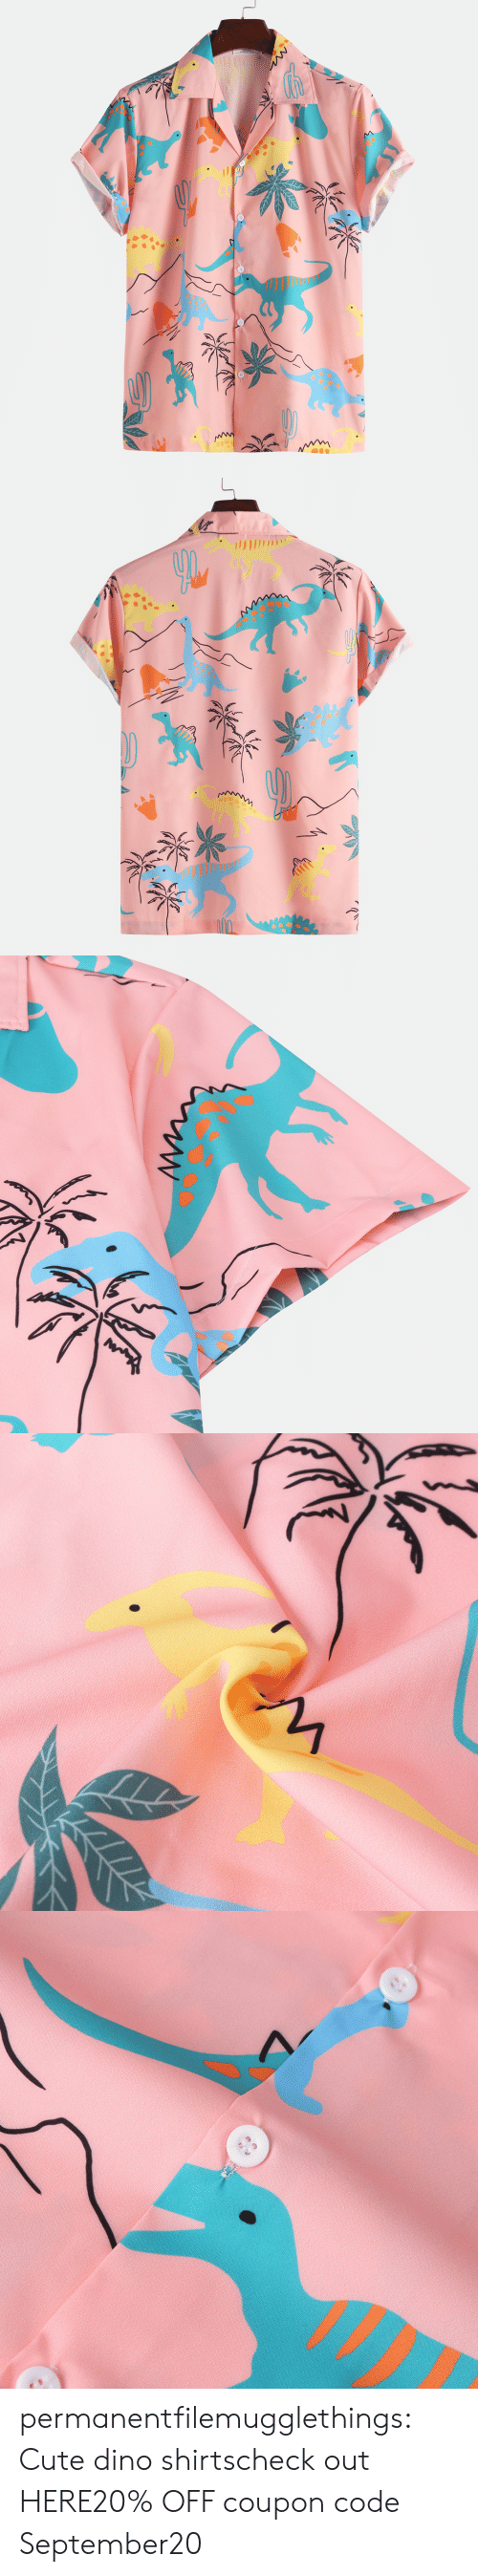 Cute, Tumblr, and Blog: * permanentfilemugglethings:  Cute dino shirtscheck out HERE20% OFF coupon code:September20